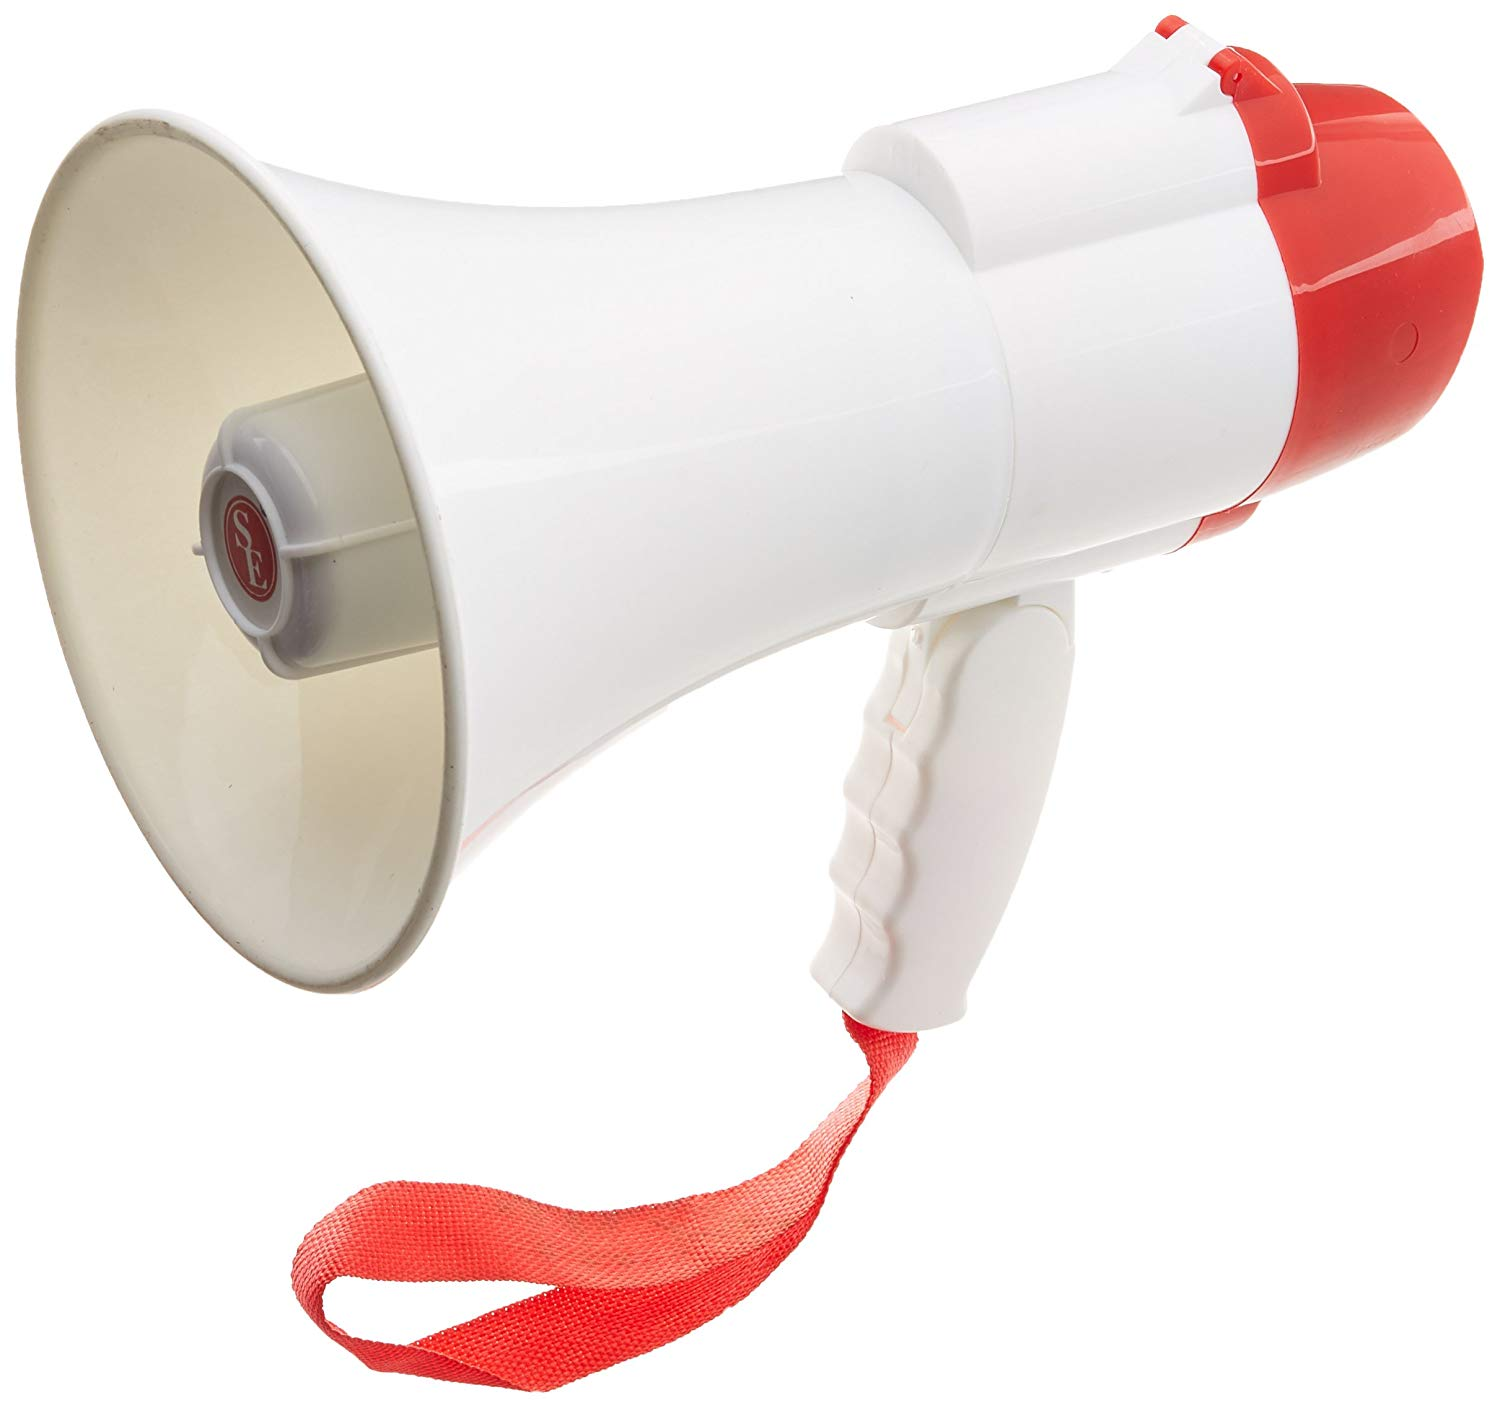 30 watt megaphone for emergency use